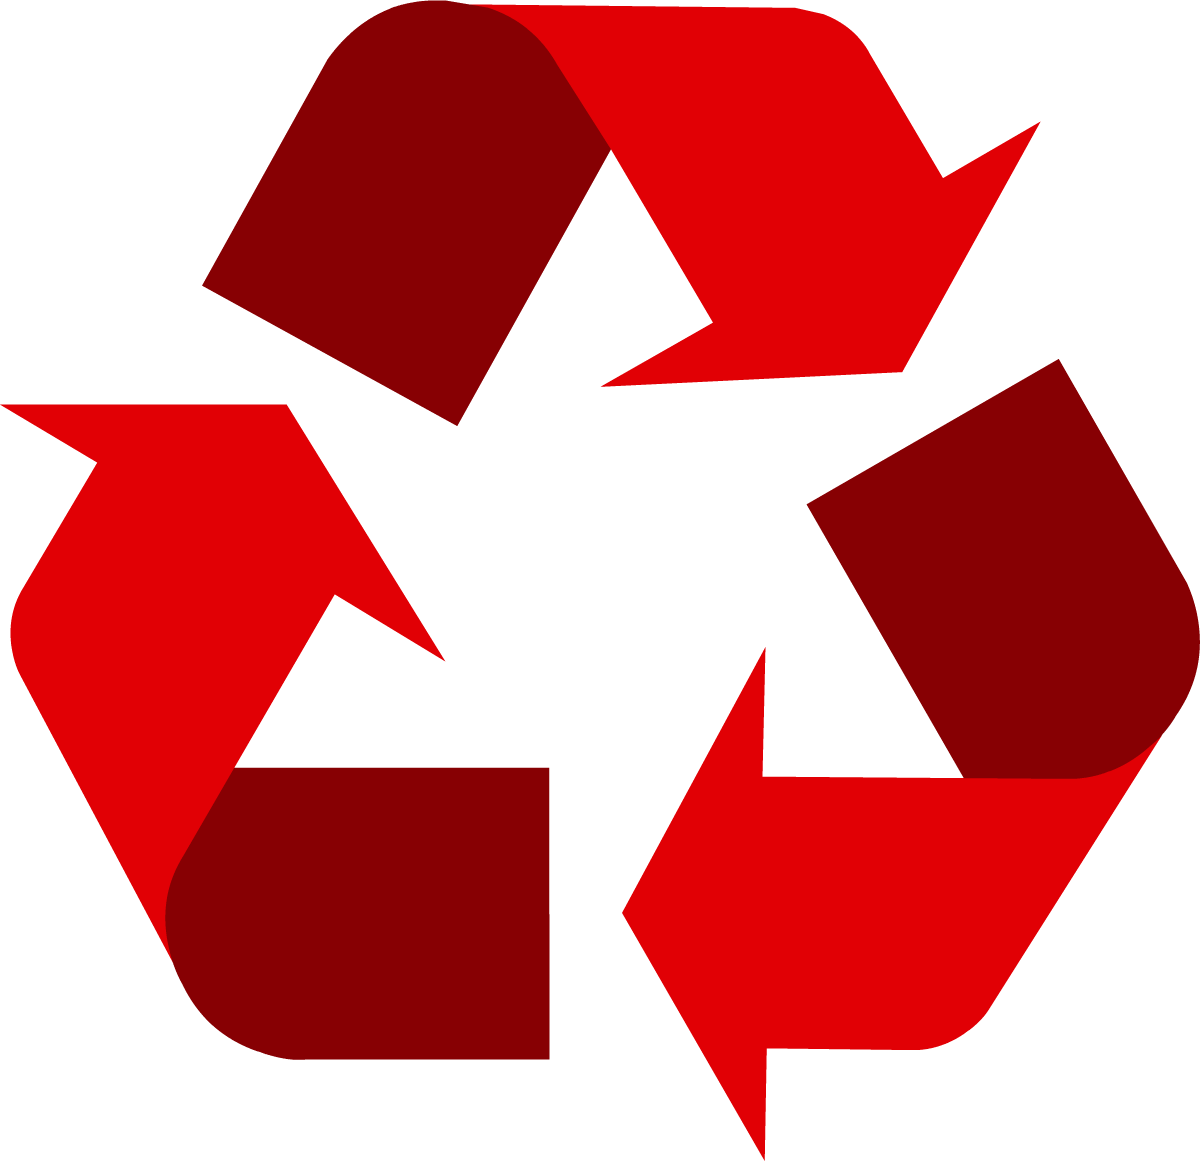 Red universal recycling symbol logo sign httpwww red universal recycling symbol logo sign httprecycling biocorpaavc Gallery